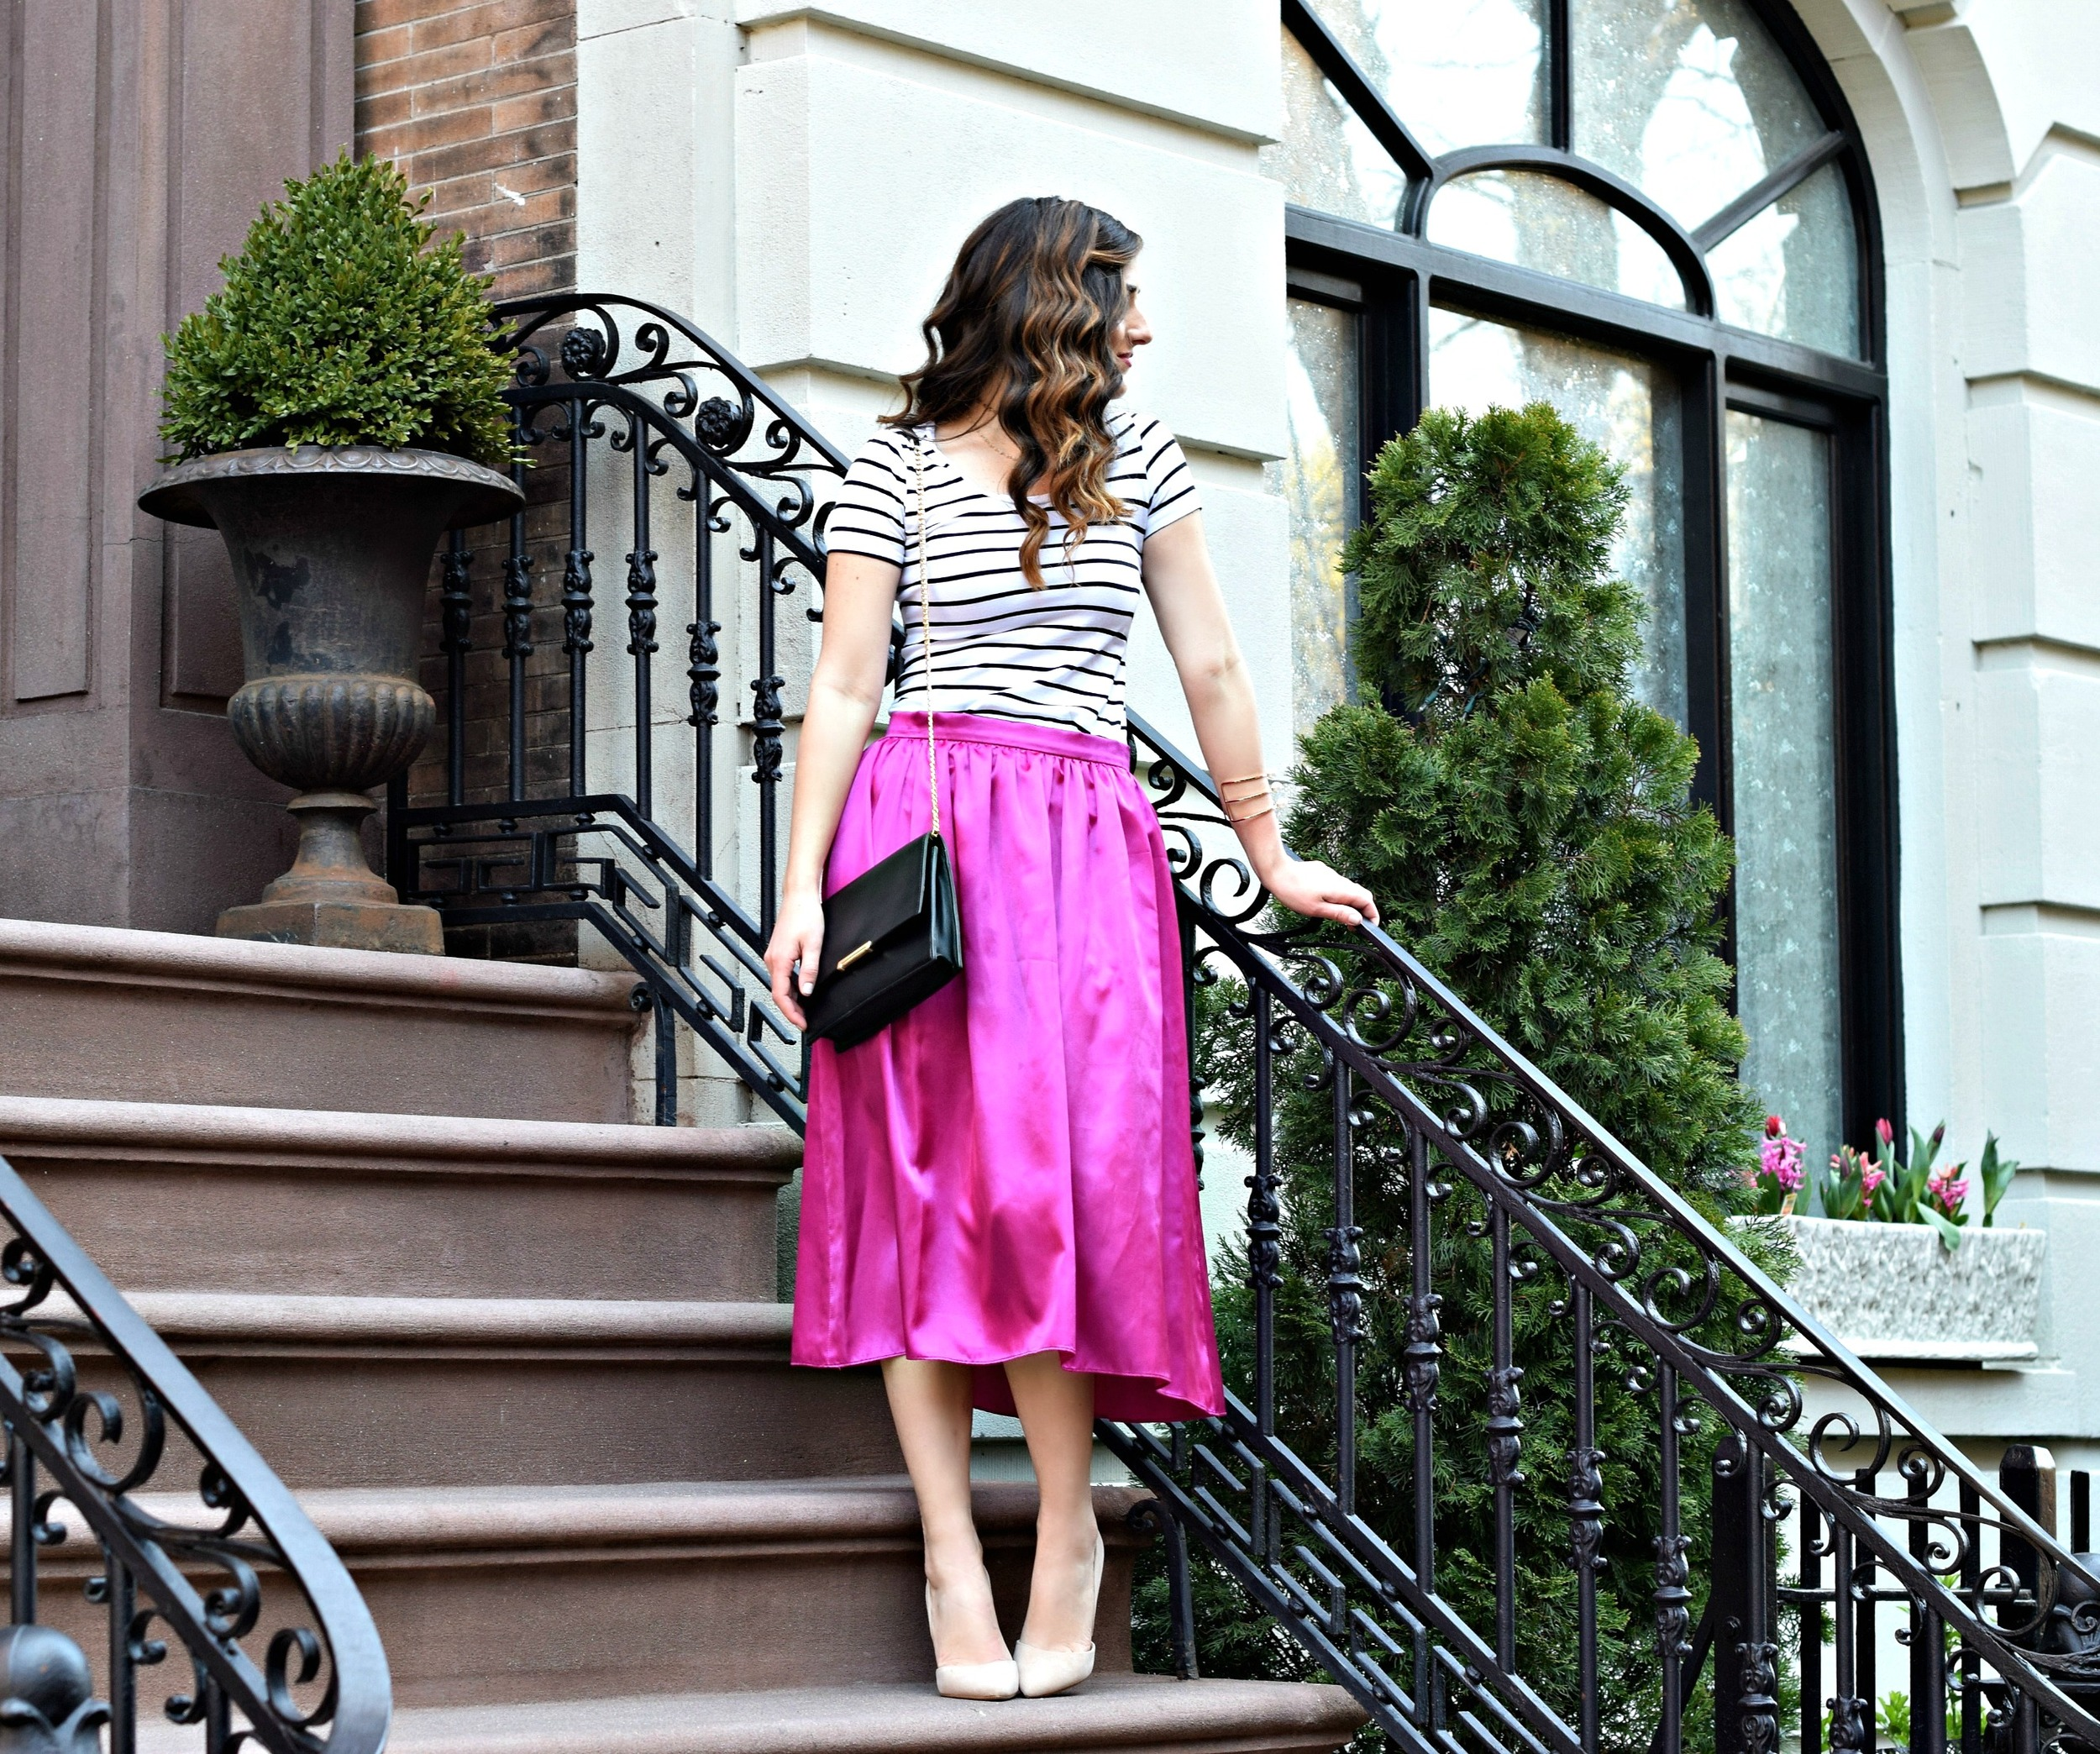 Fuchsia Party Skirt More Than Just Figleaves Louboutins & Love Fashion Blog Esther Santer NYC Street Style Blogger Outfit OOTD Midi Photoshoot Women Girl Striped T-Shirt Black BagIvanka Trump Choker Bracelet Gold Jewelry Nude Heels Shoes Steve Madden.jpg